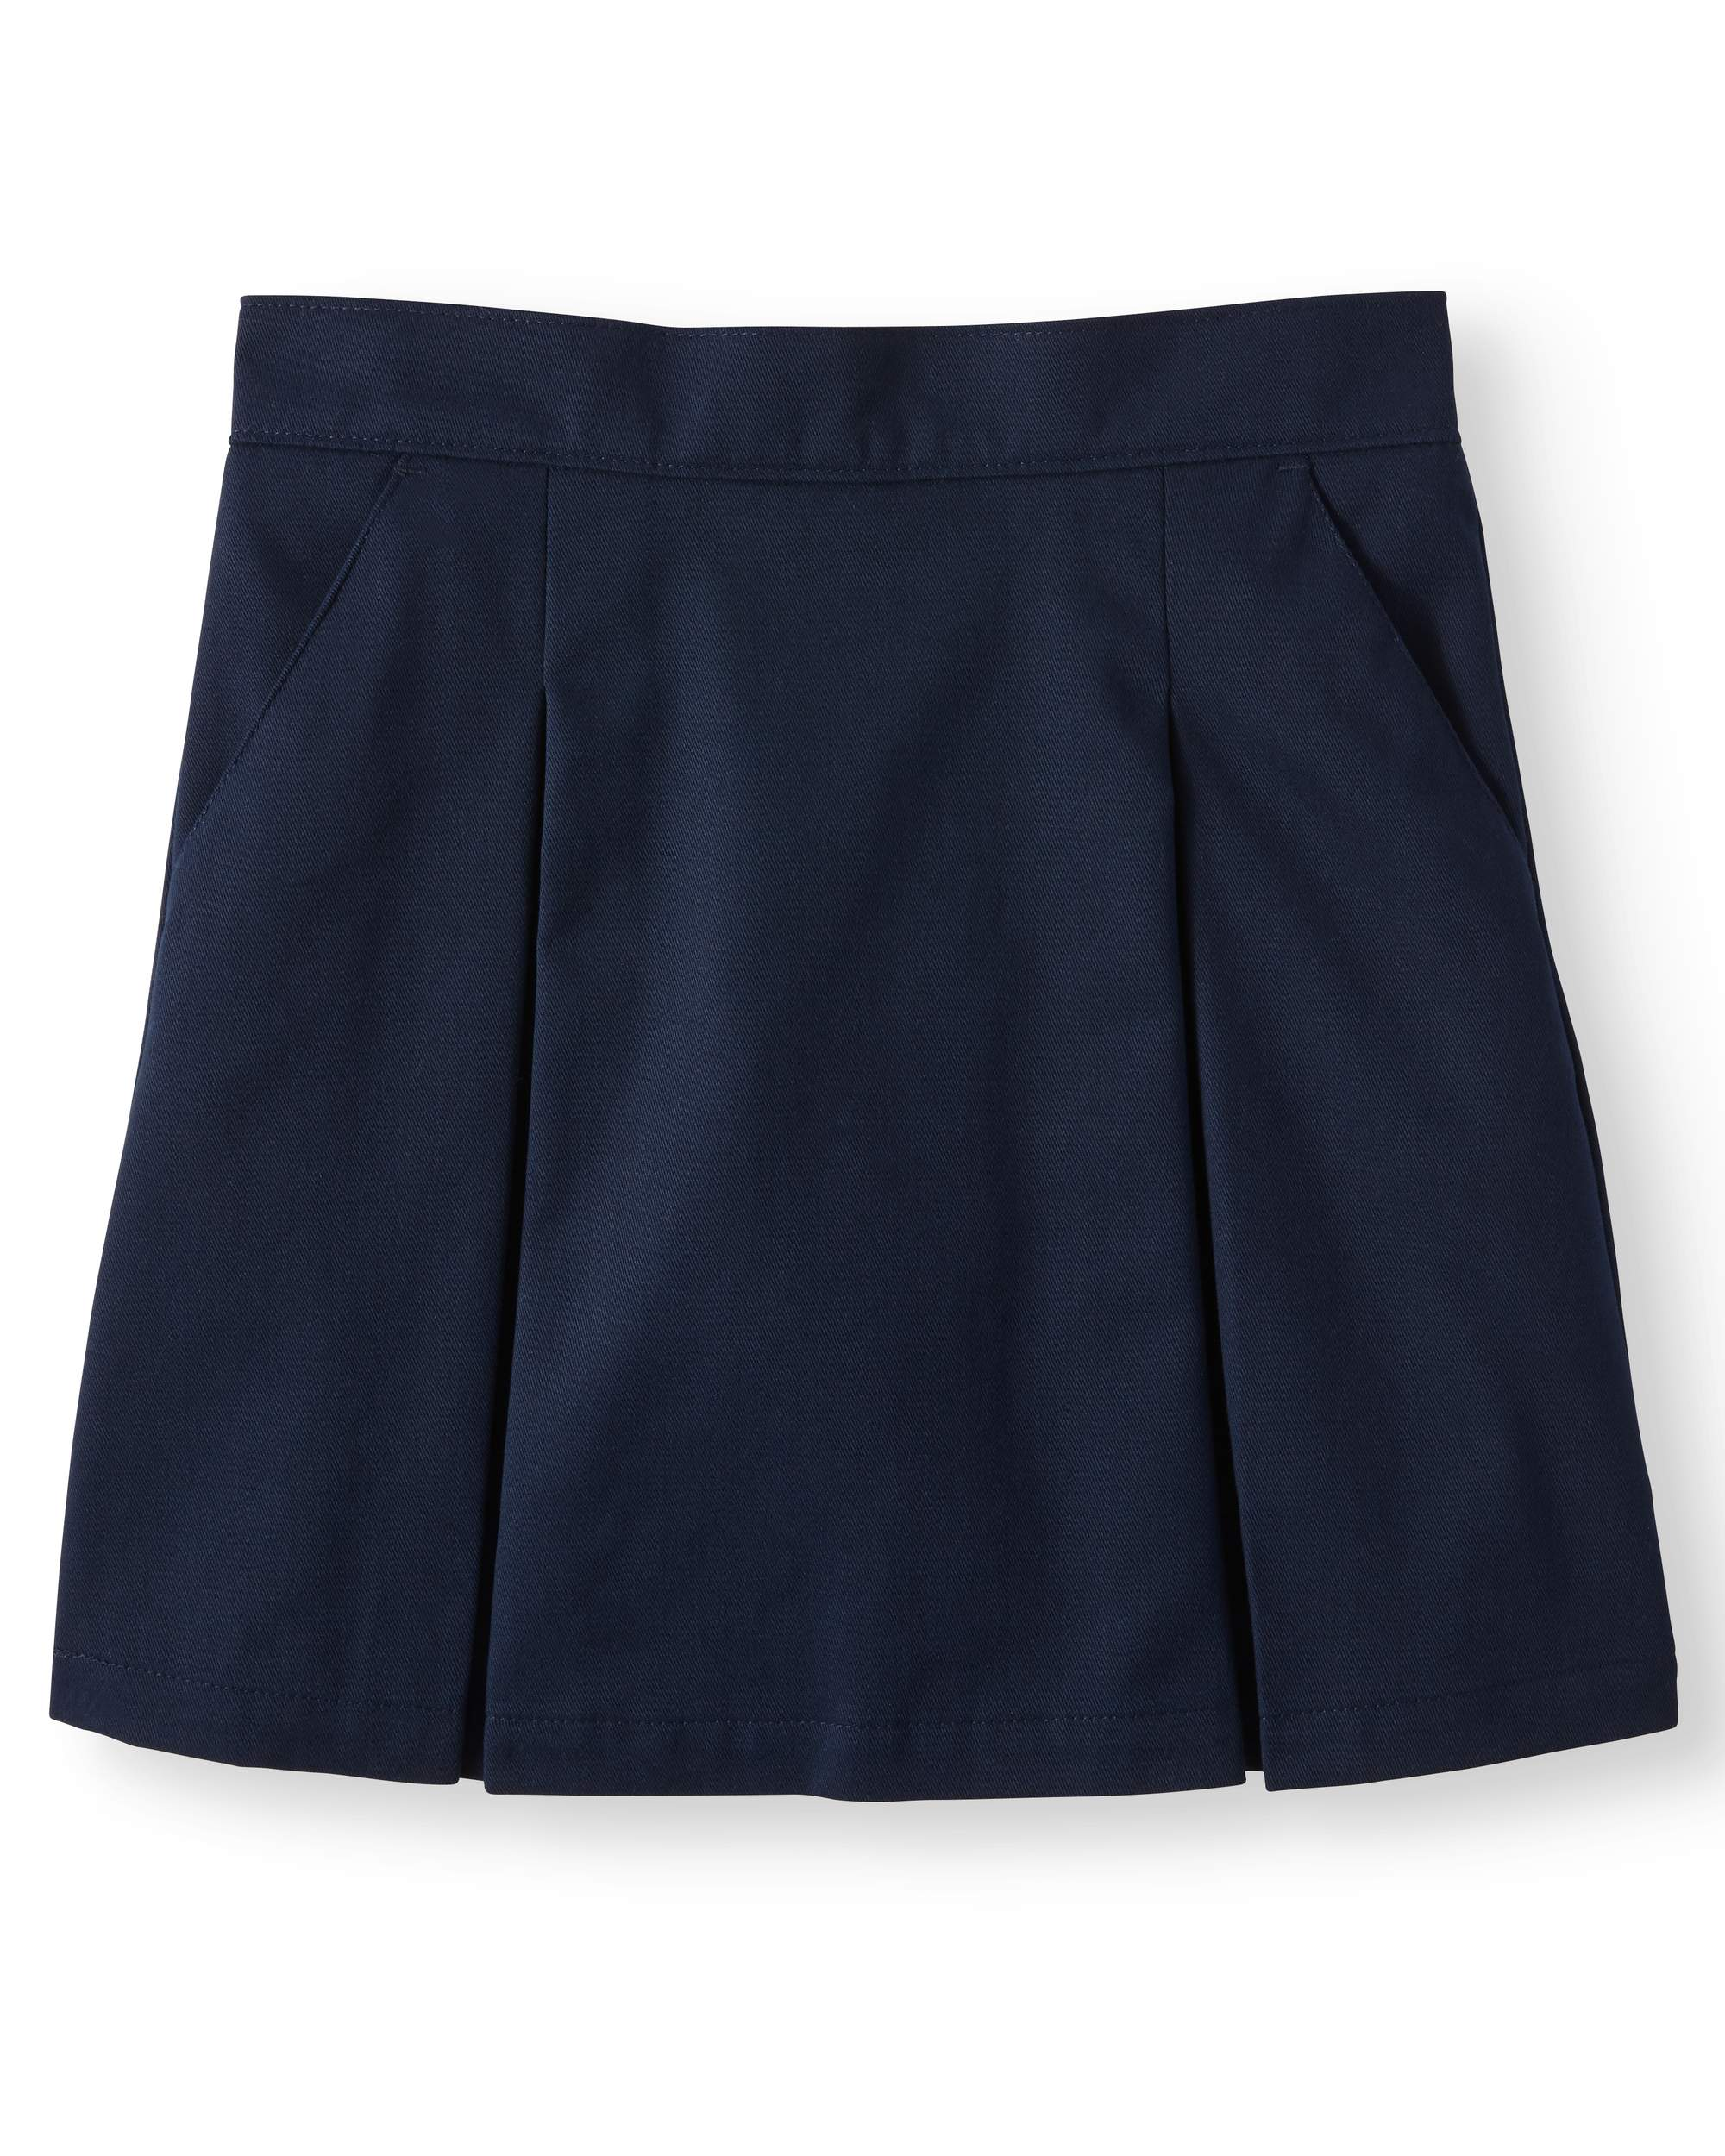 Girls' School Uniform Twill Scooter with Pockets